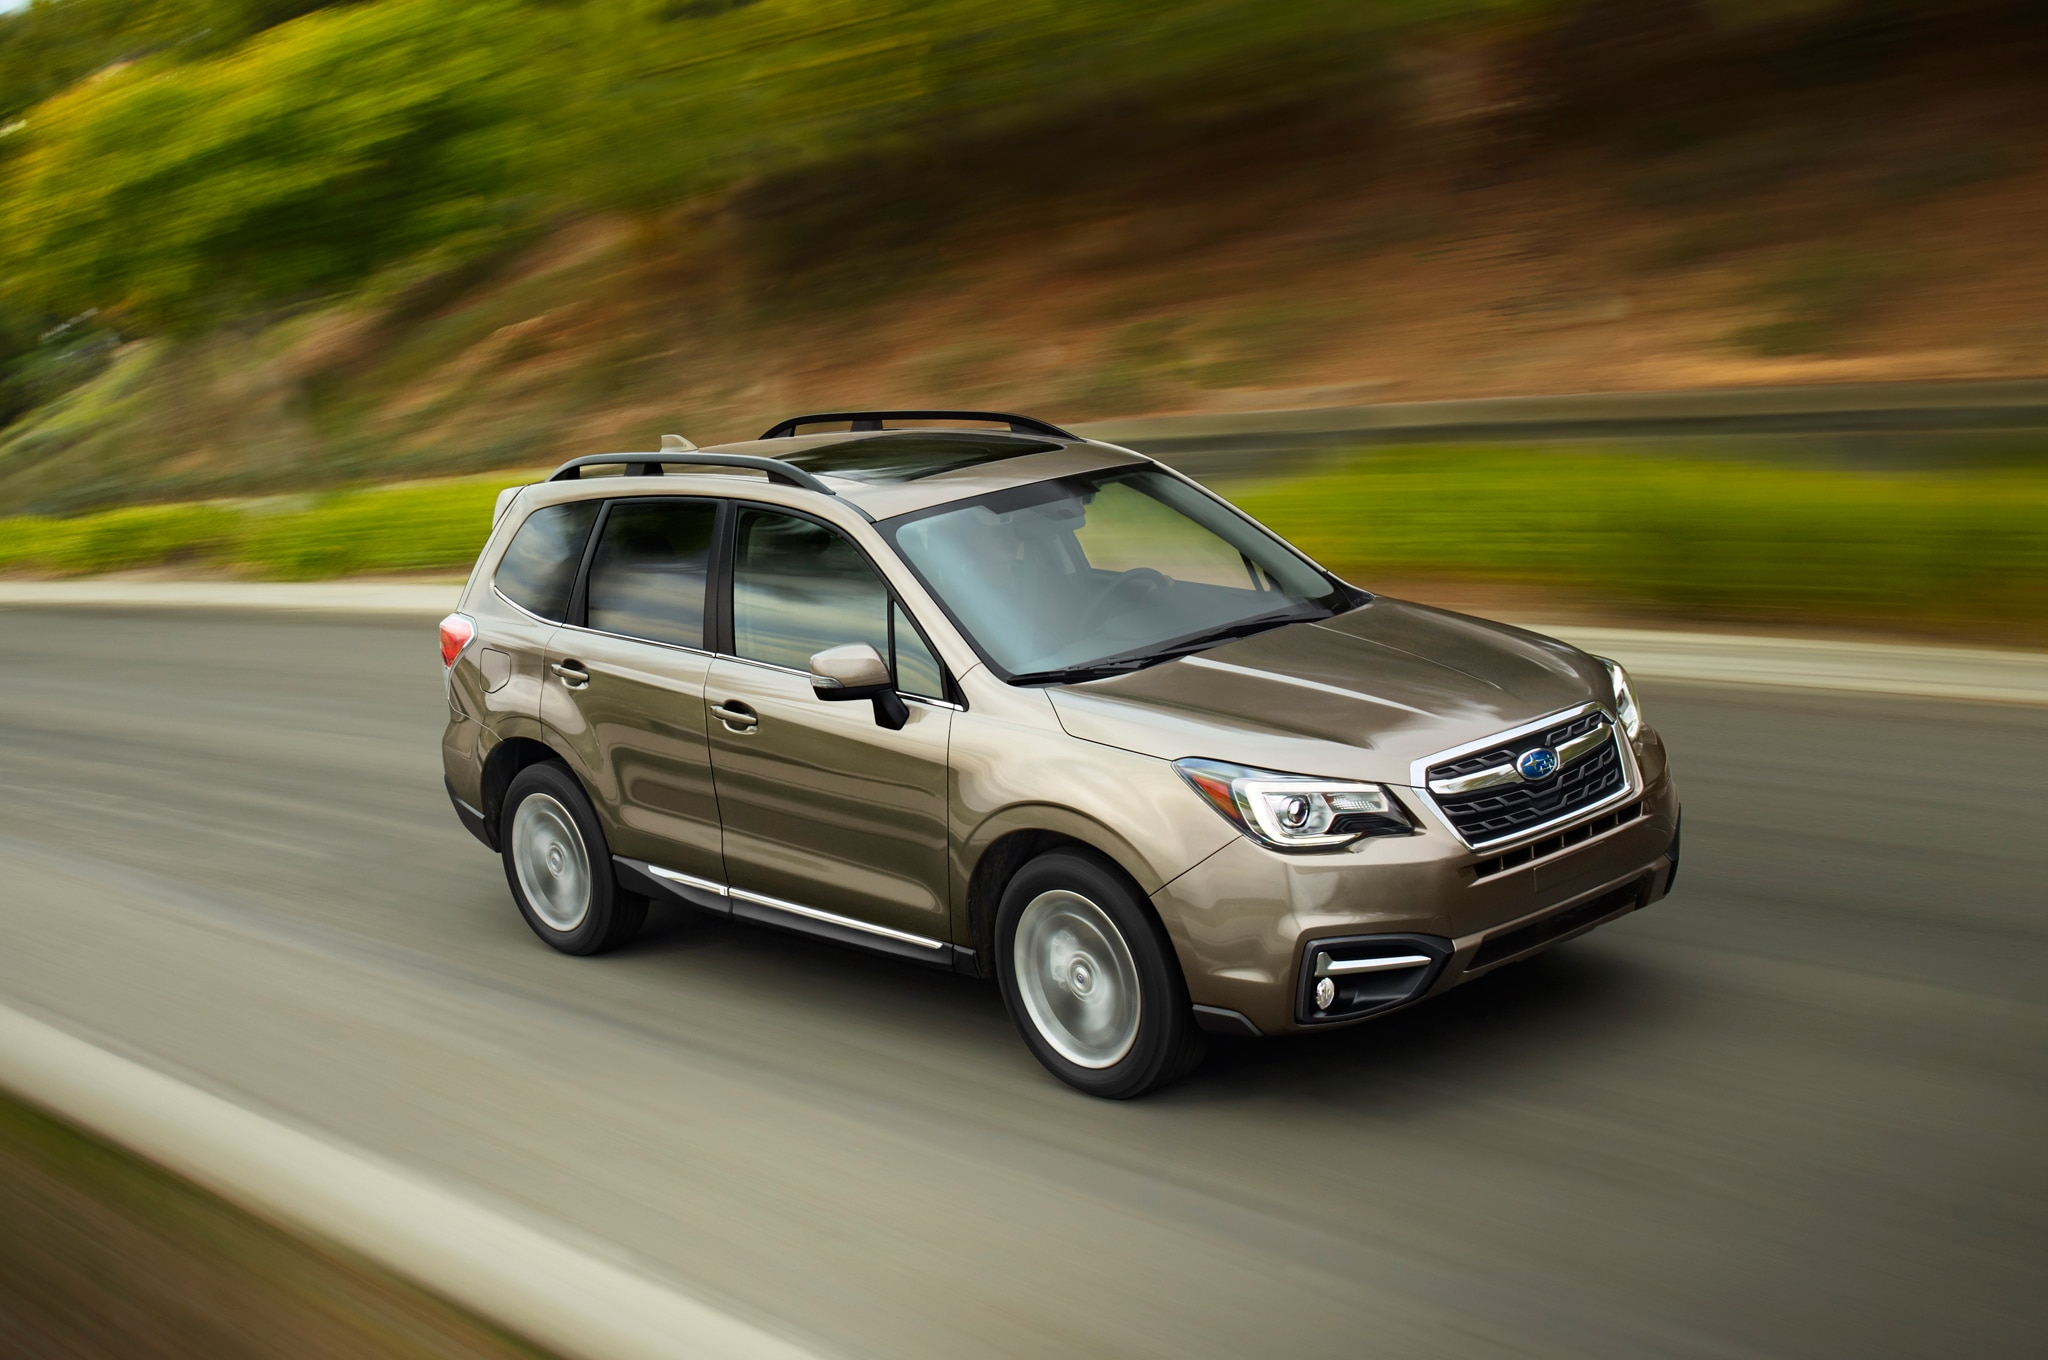 2017 subaru forester priced from 23 470 automobile magazine